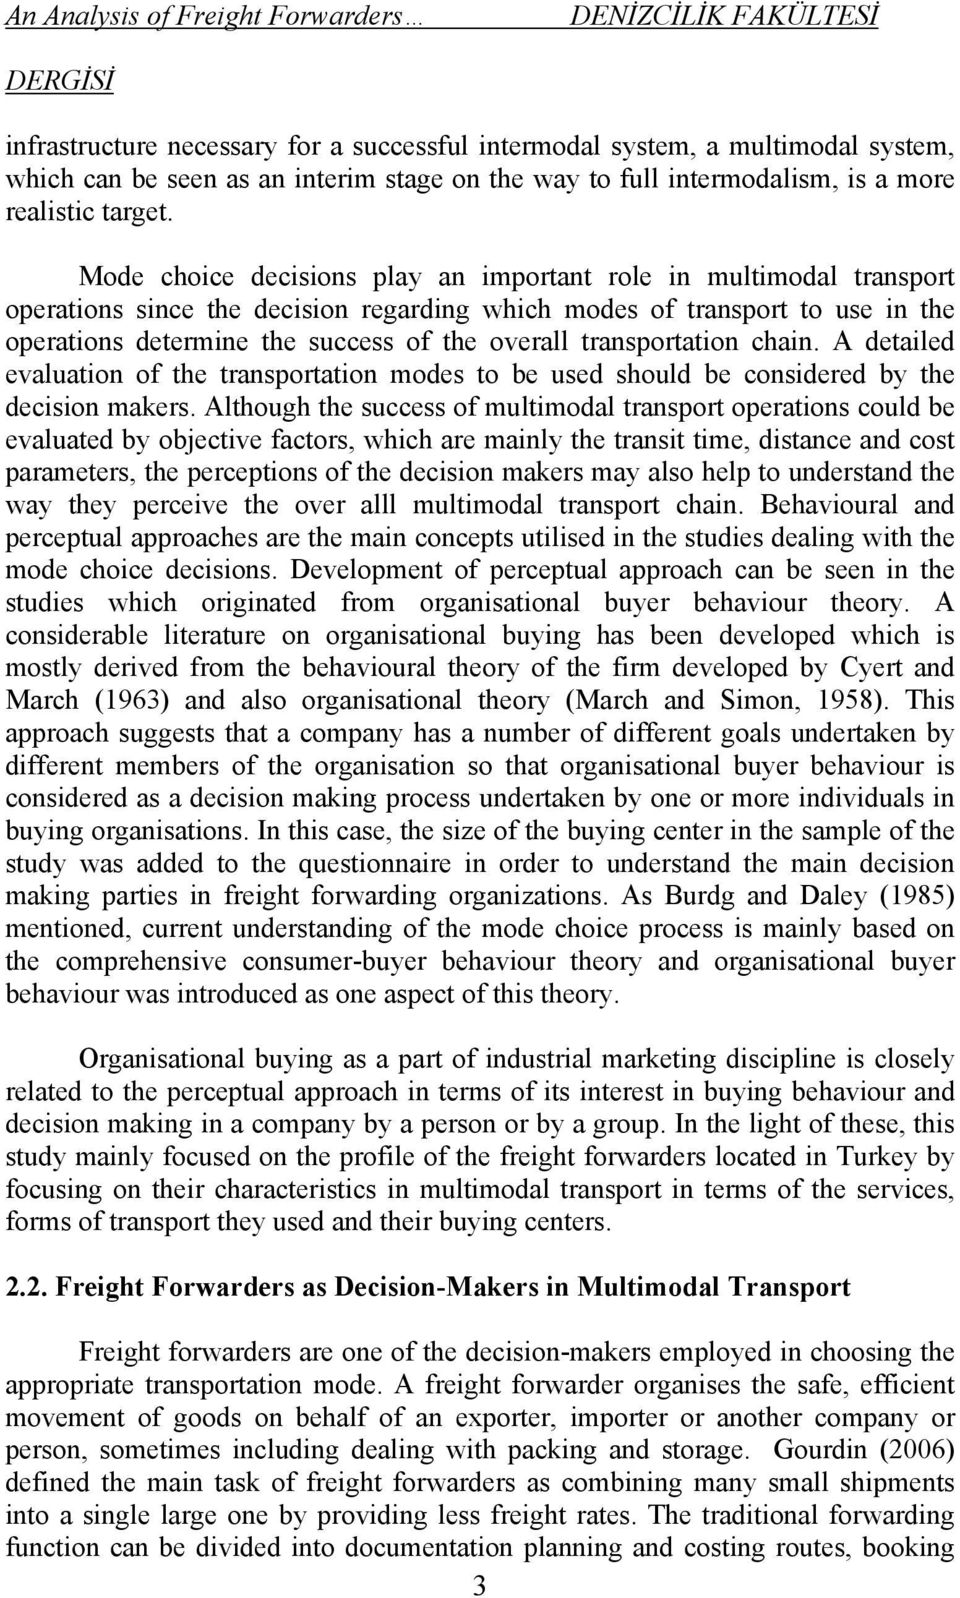 Mode choice decisions play an important role in multimodal transport operations since the decision regarding which modes of transport to use in the operations determine the success of the overall